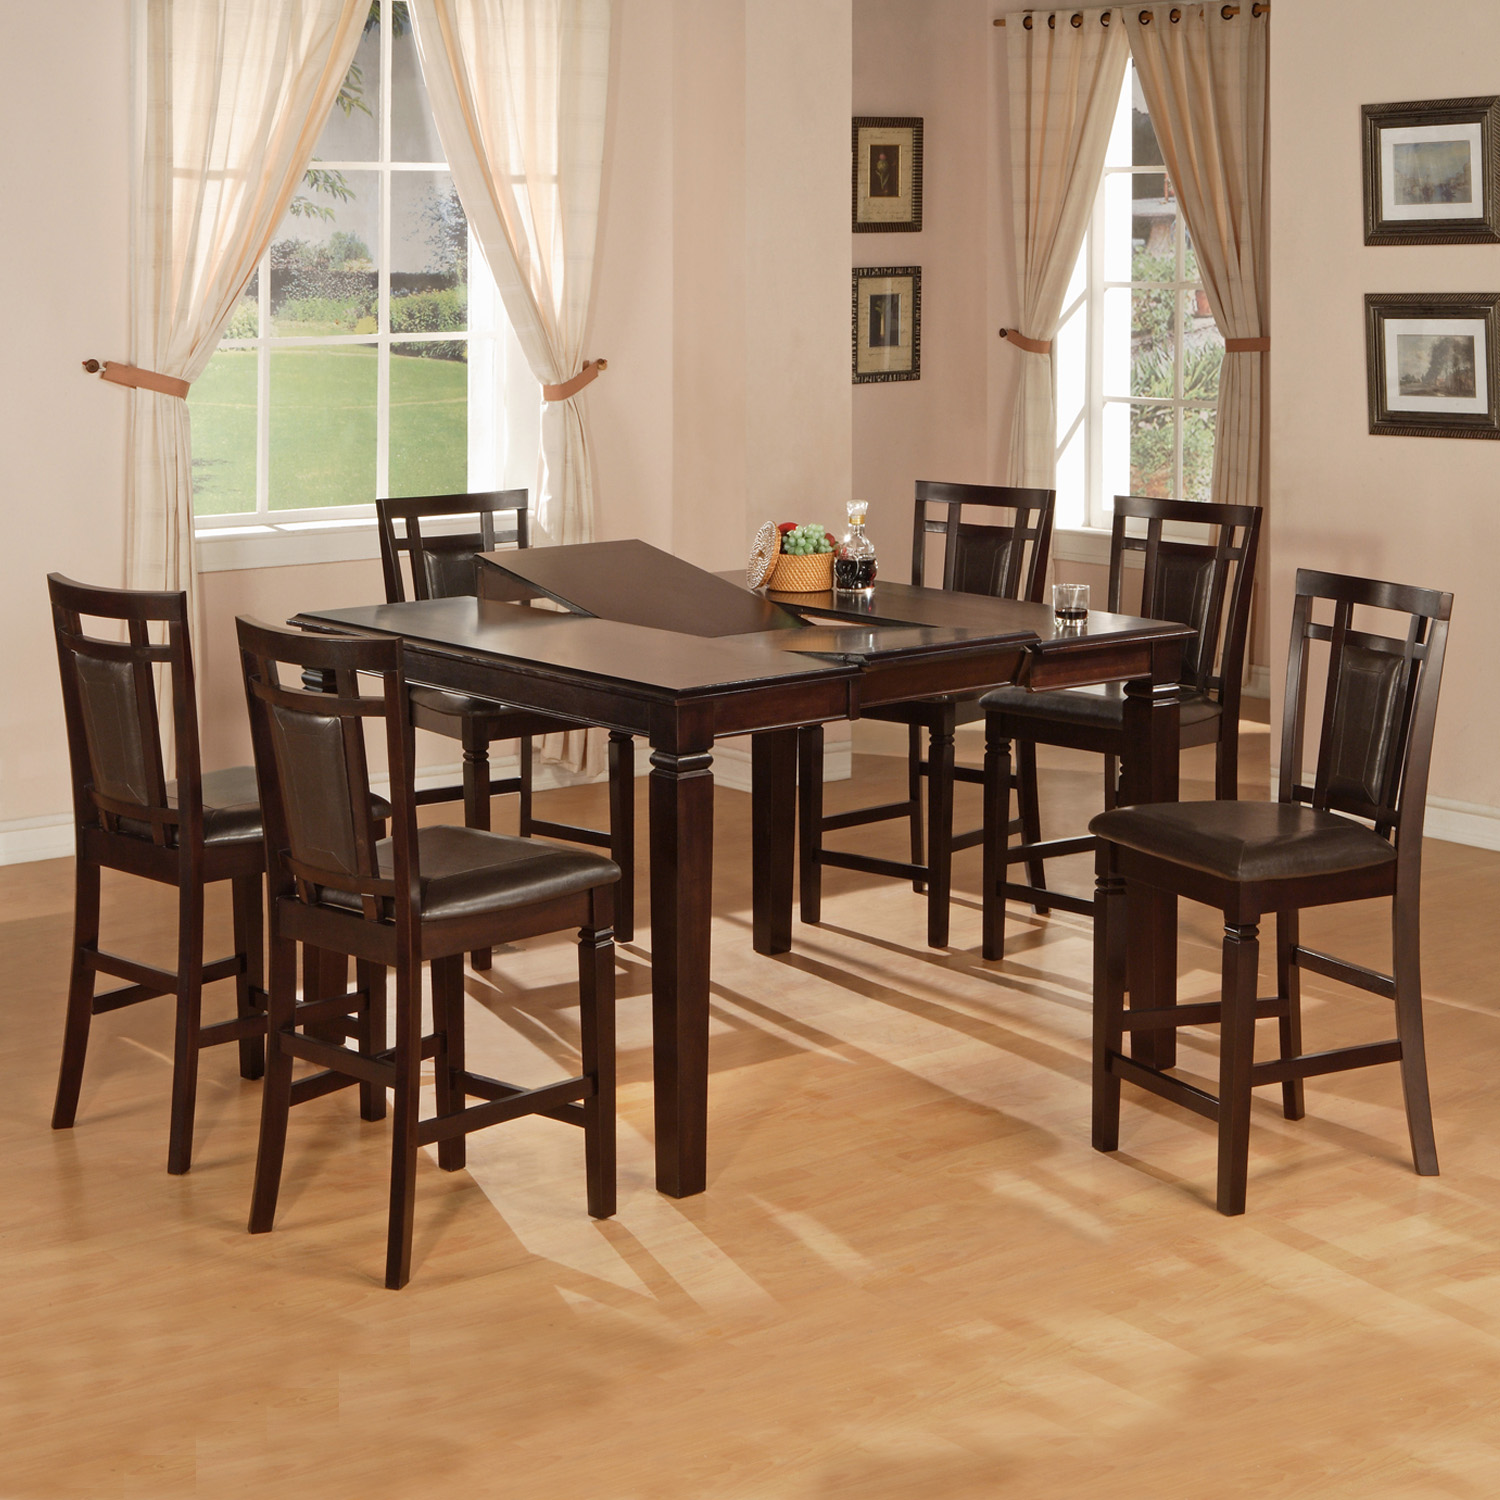 Genial Home Source Counter Height 5 Piece Butterfly Leaf Dining Set